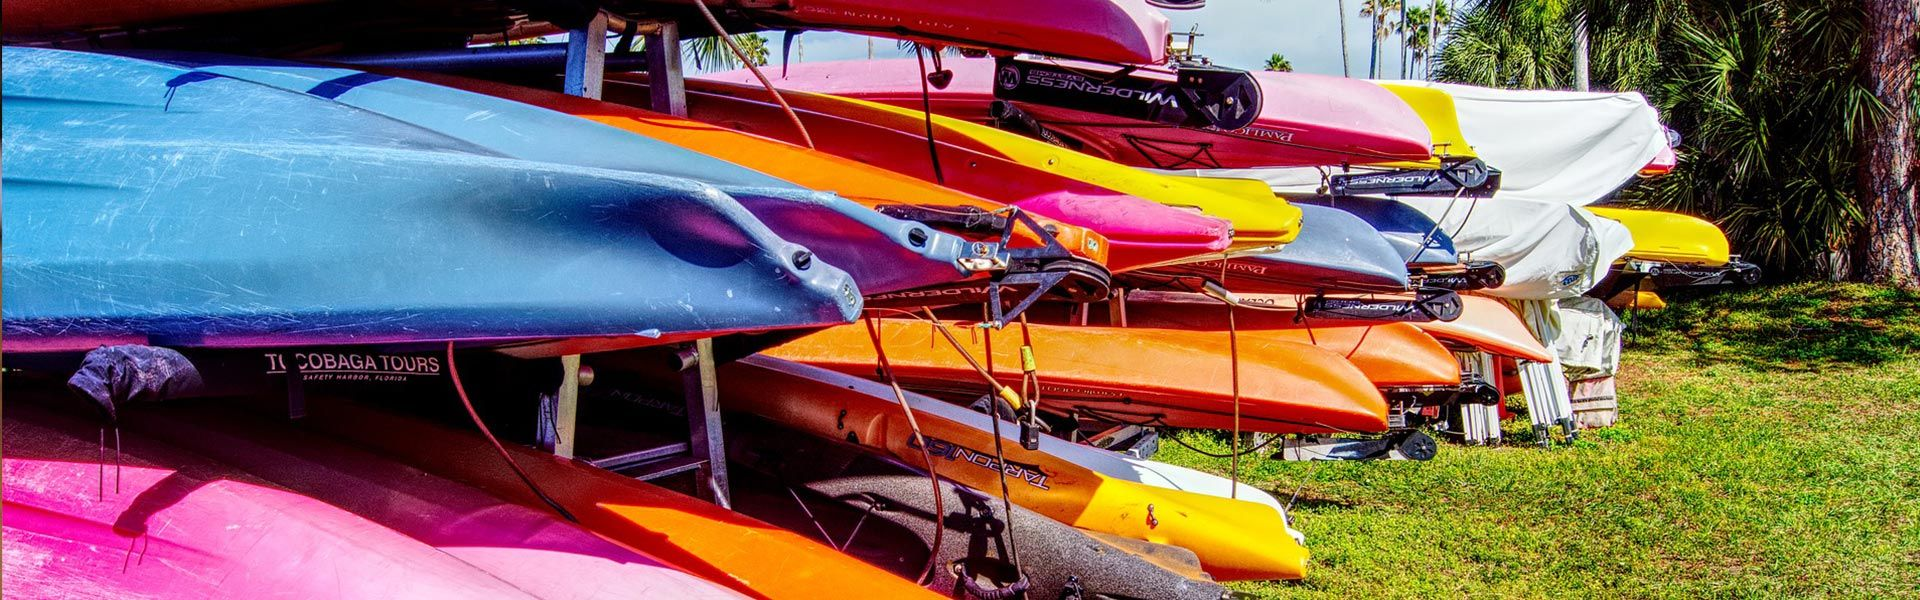 kayak-rental-header-1